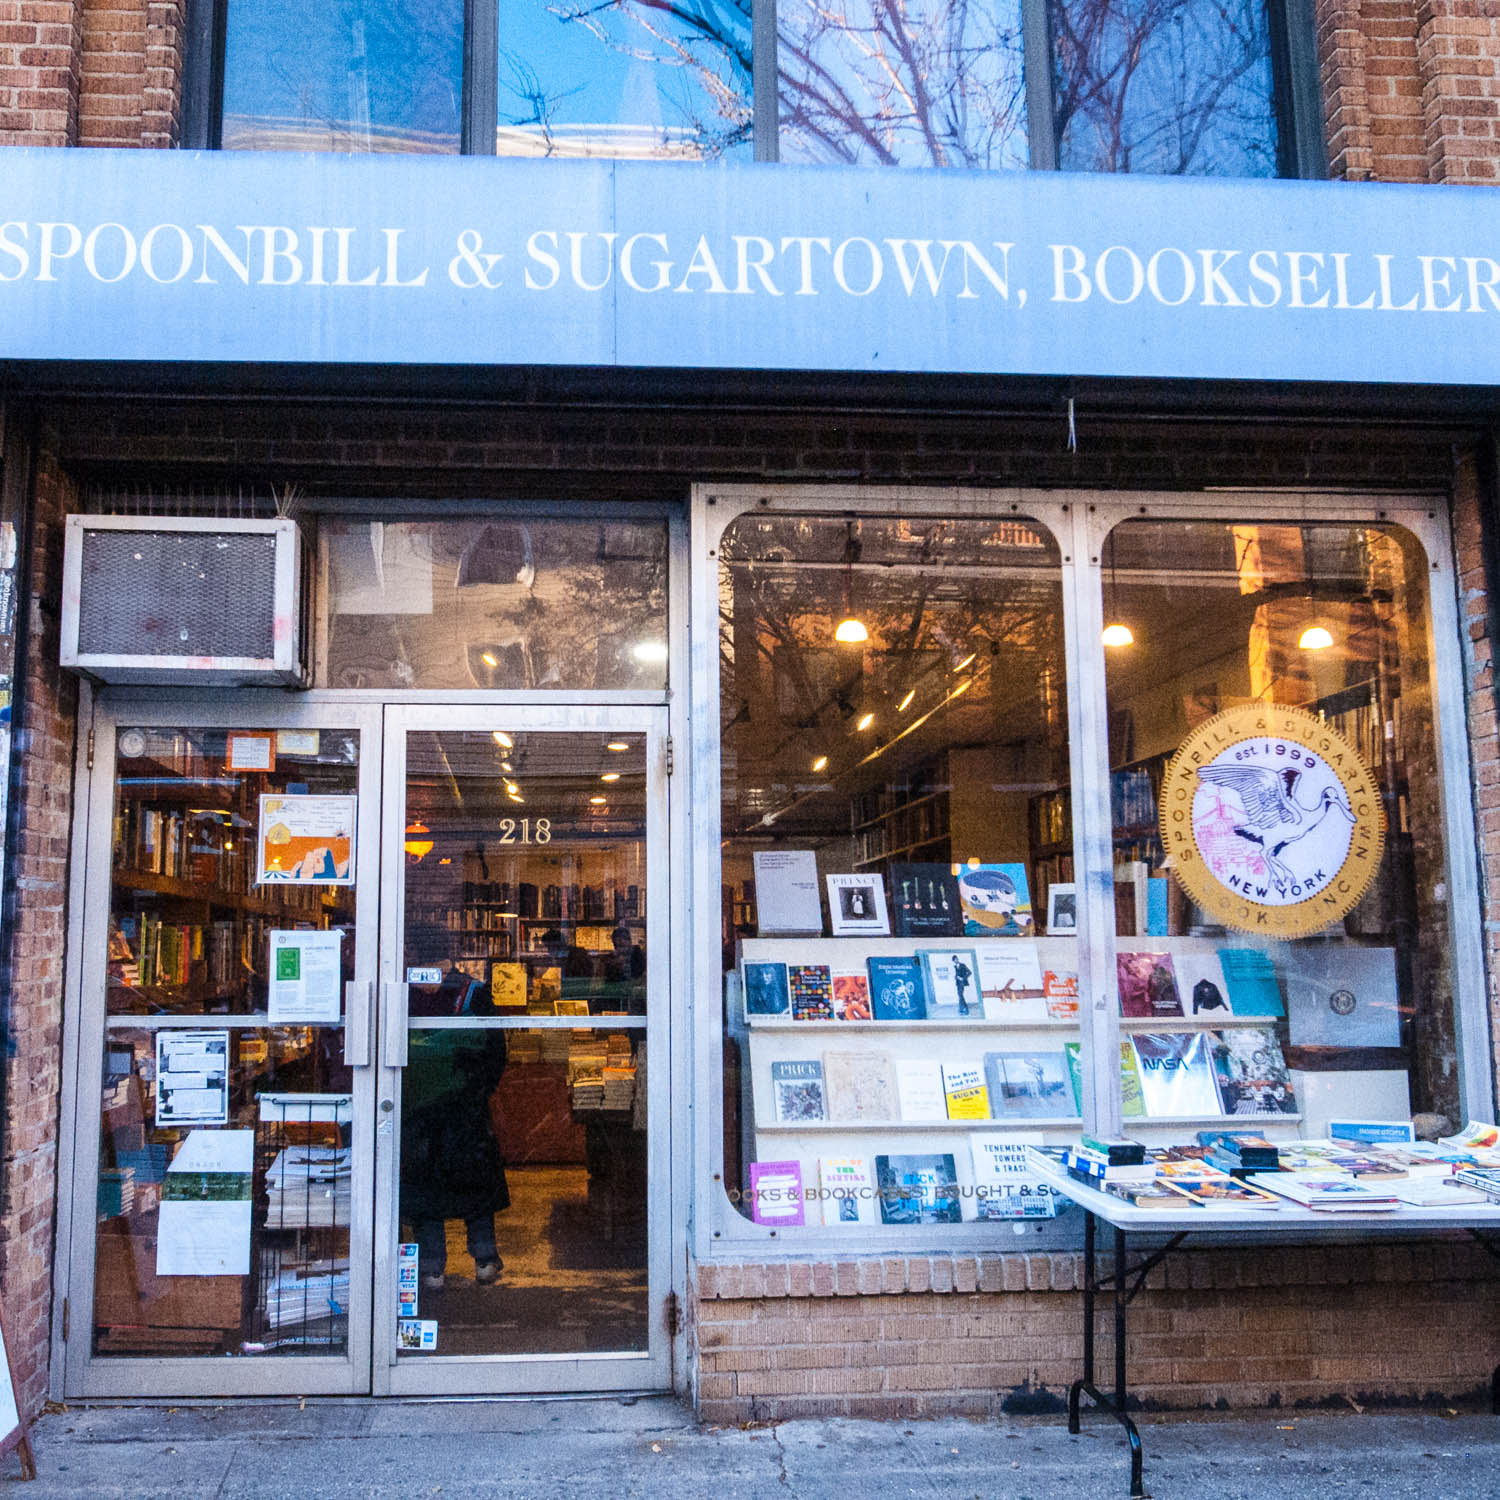 Spoonbill & Sugartown Bookseller